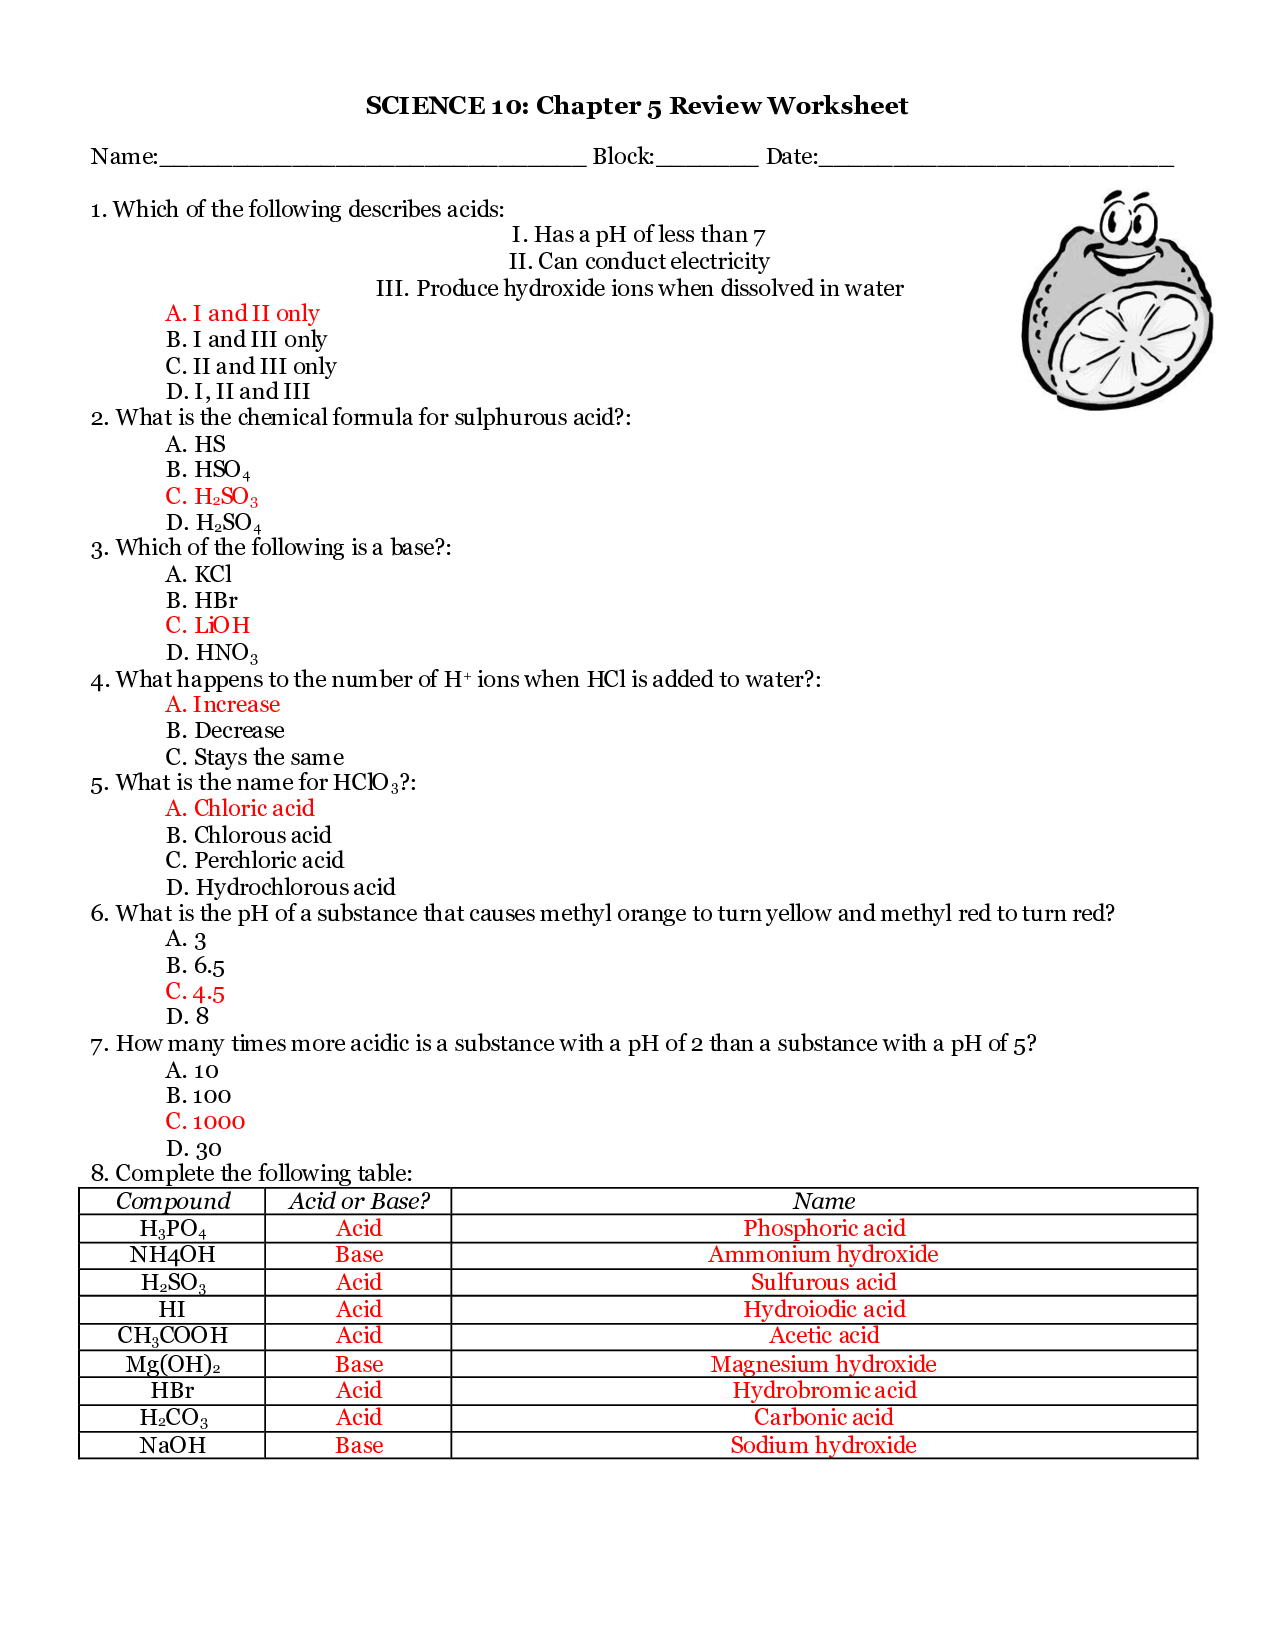 12 Best Images Of Acid Nomenclature Worksheet